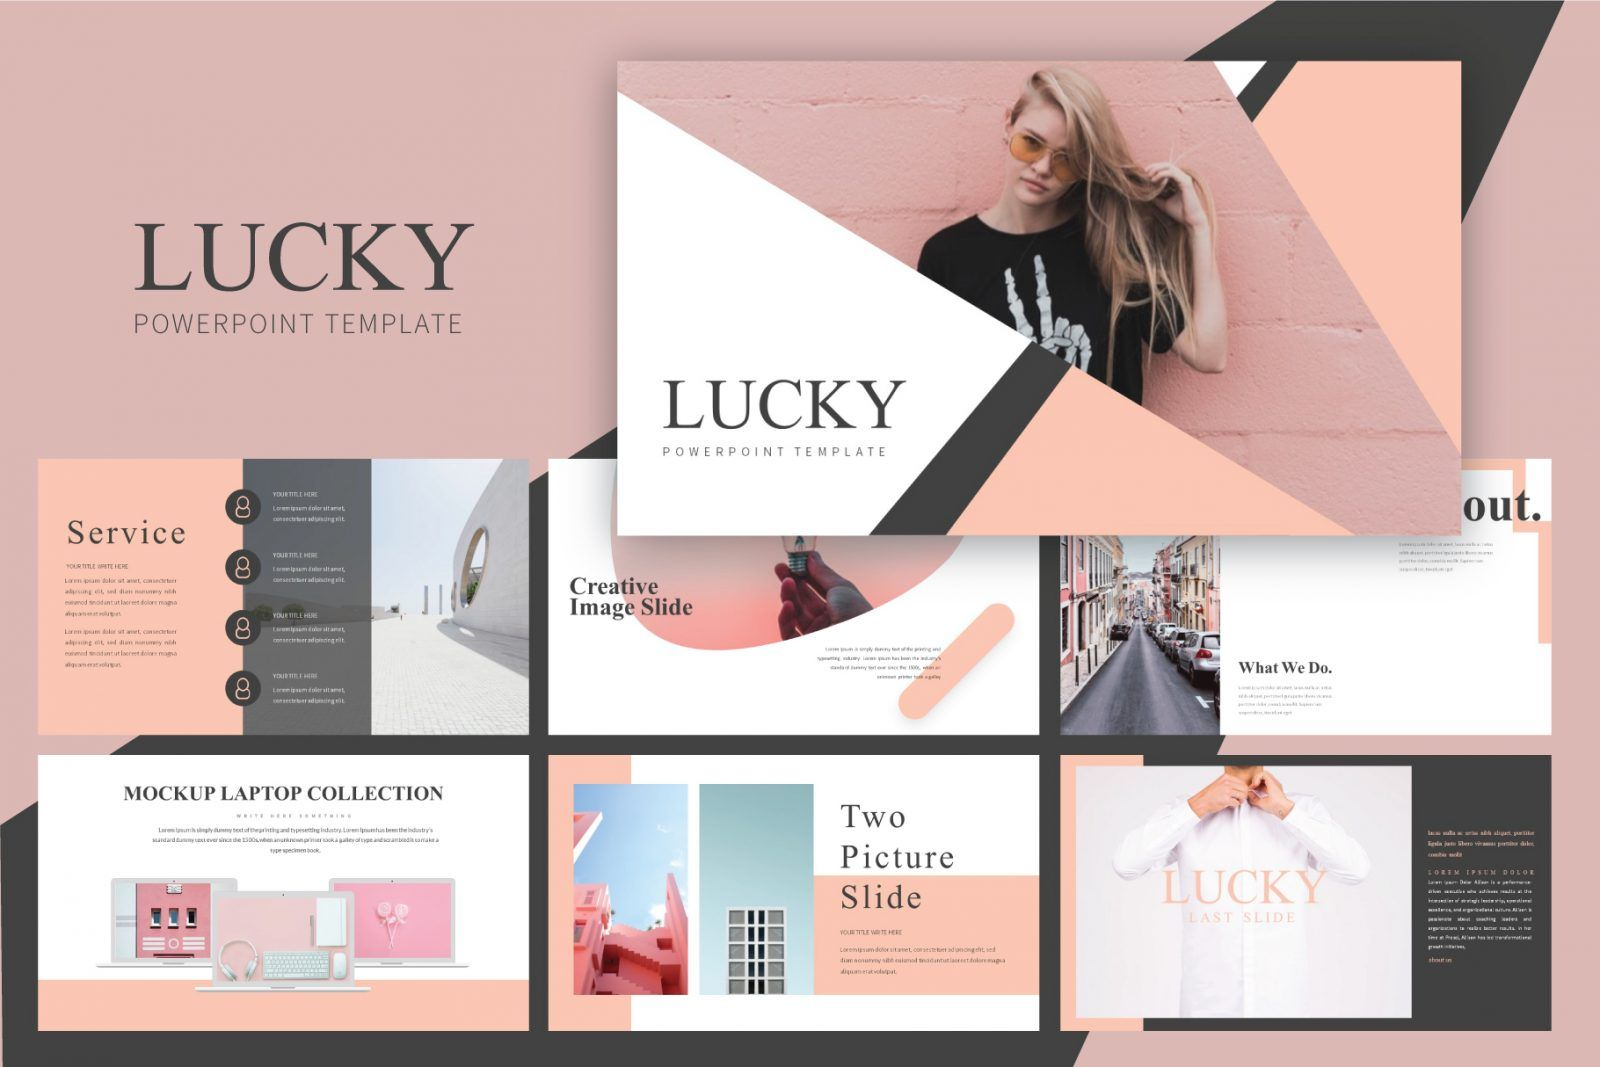 Minimal Powerpoint Template Free Pixelify Best Free Fonts Mockups Templates And Vectors Powerpoint Template Free Powerpoint Templates Powerpoint